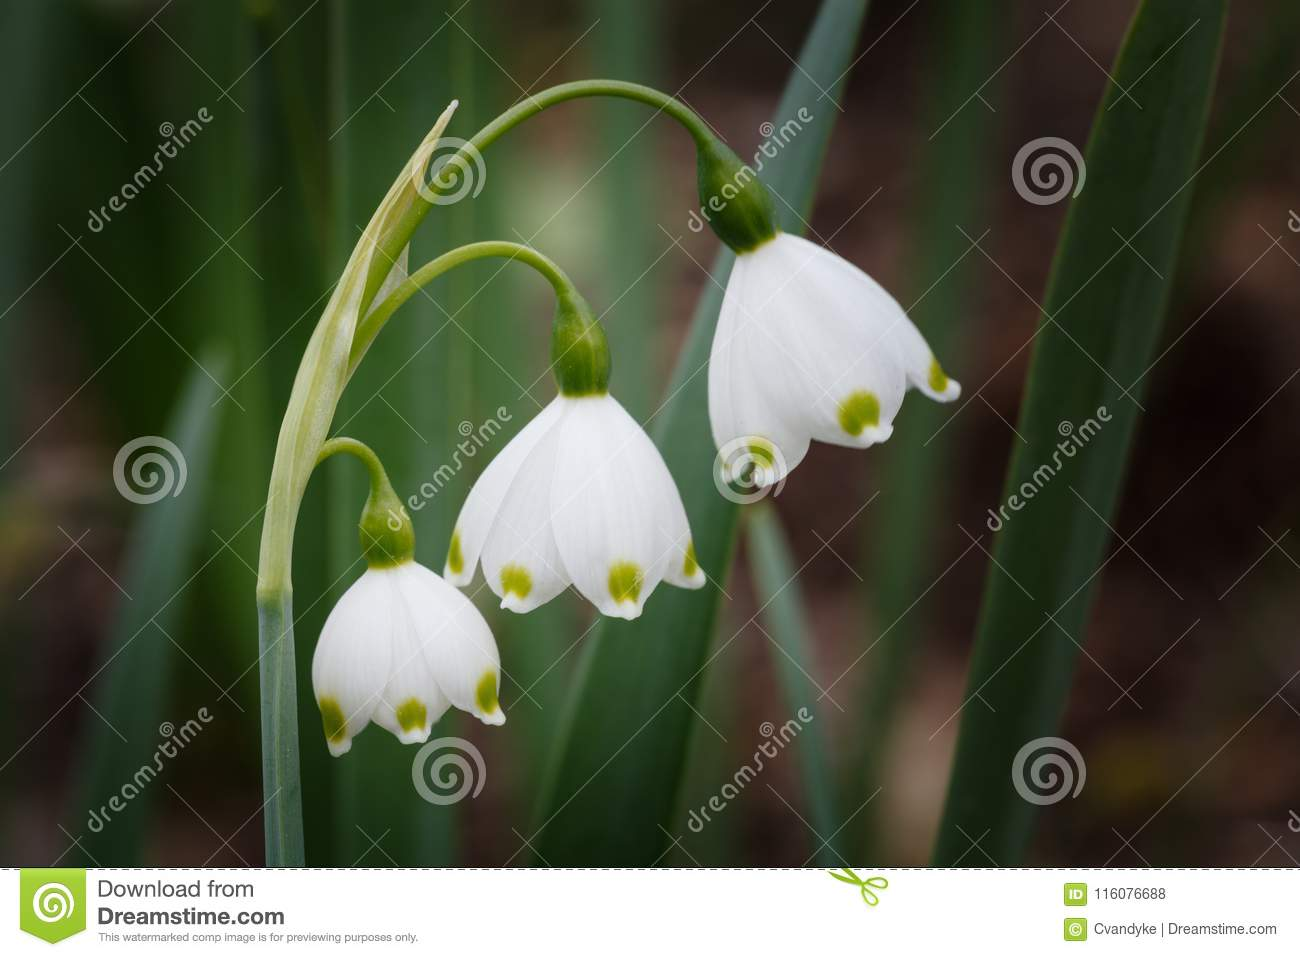 Snow drop flowers galanthus in bloom stock photo image of shaped three single small white drooping bell shaped snow drop flowers in an outdoor garden in virginia mightylinksfo